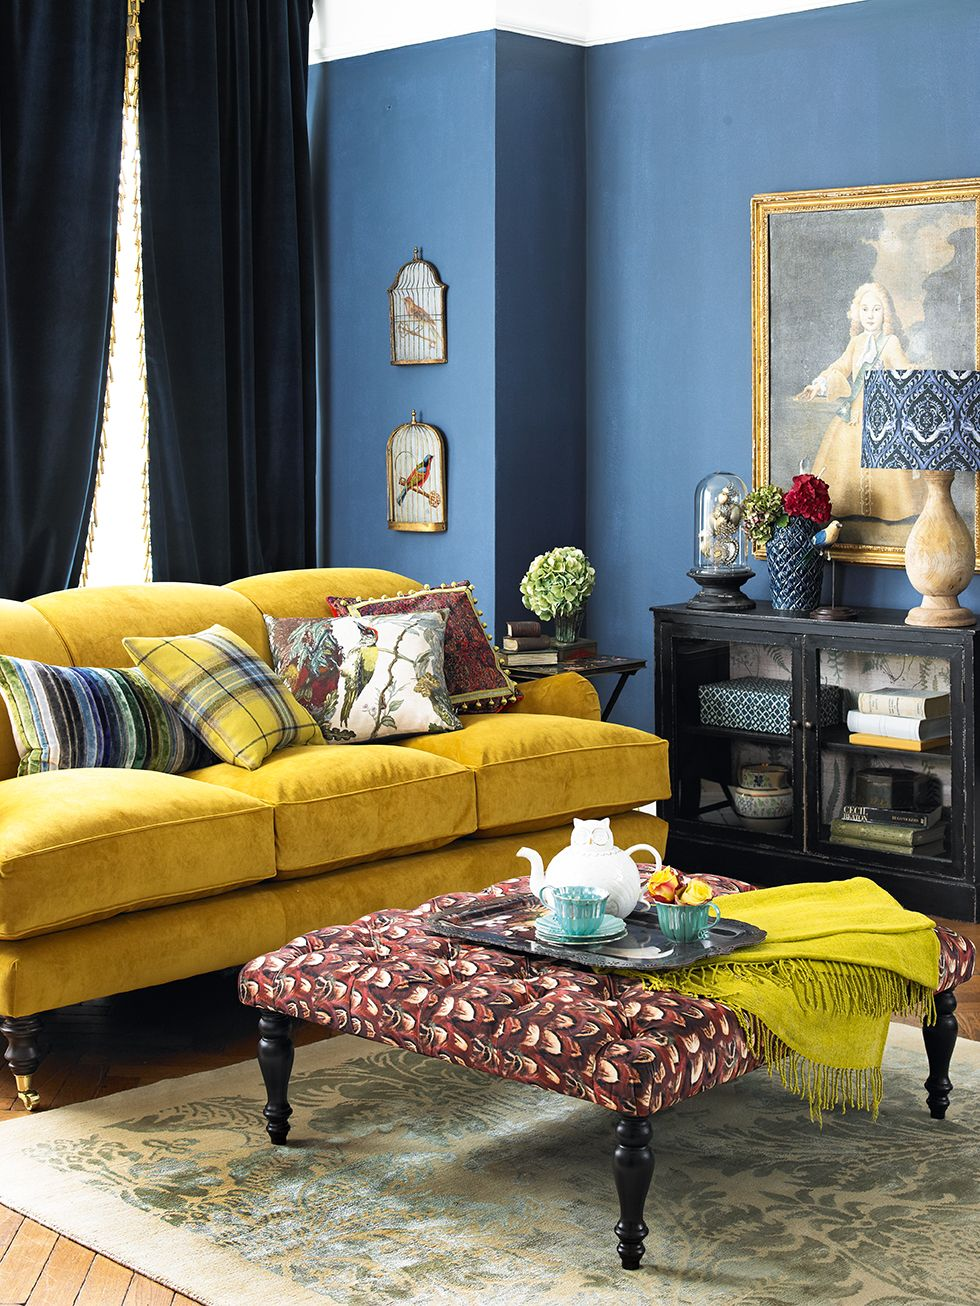 Walls stiffkey blue by farrow ball sofa in house velvet turmeric from sofa · yellow living roomsliving room